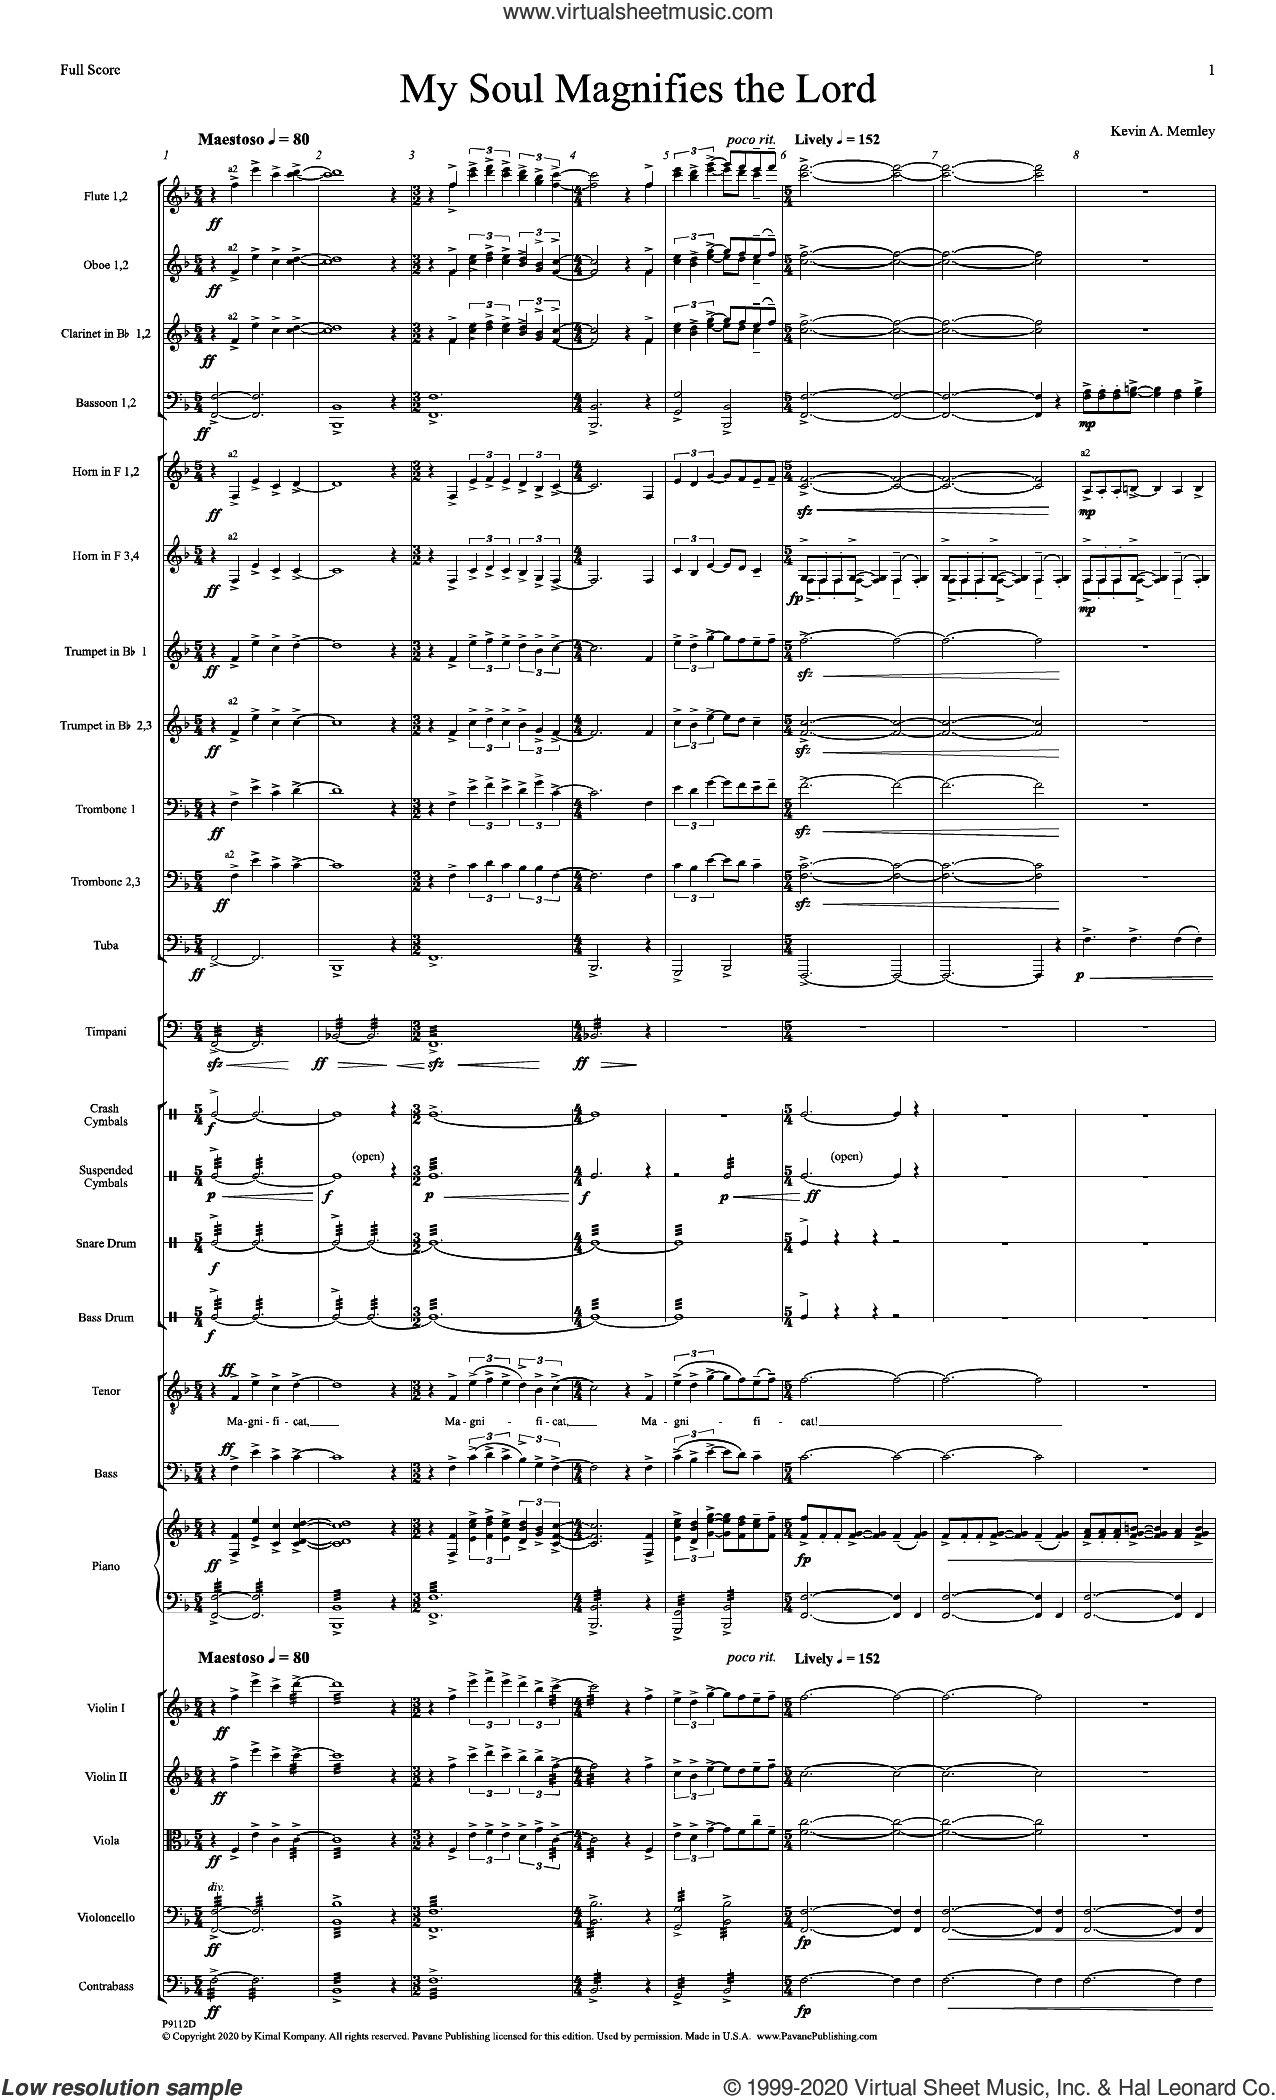 My Soul Magnifies the Lord (Full Orchestra) (COMPLETE) sheet music for orchestra/band by Kevin A. Memley, intermediate skill level